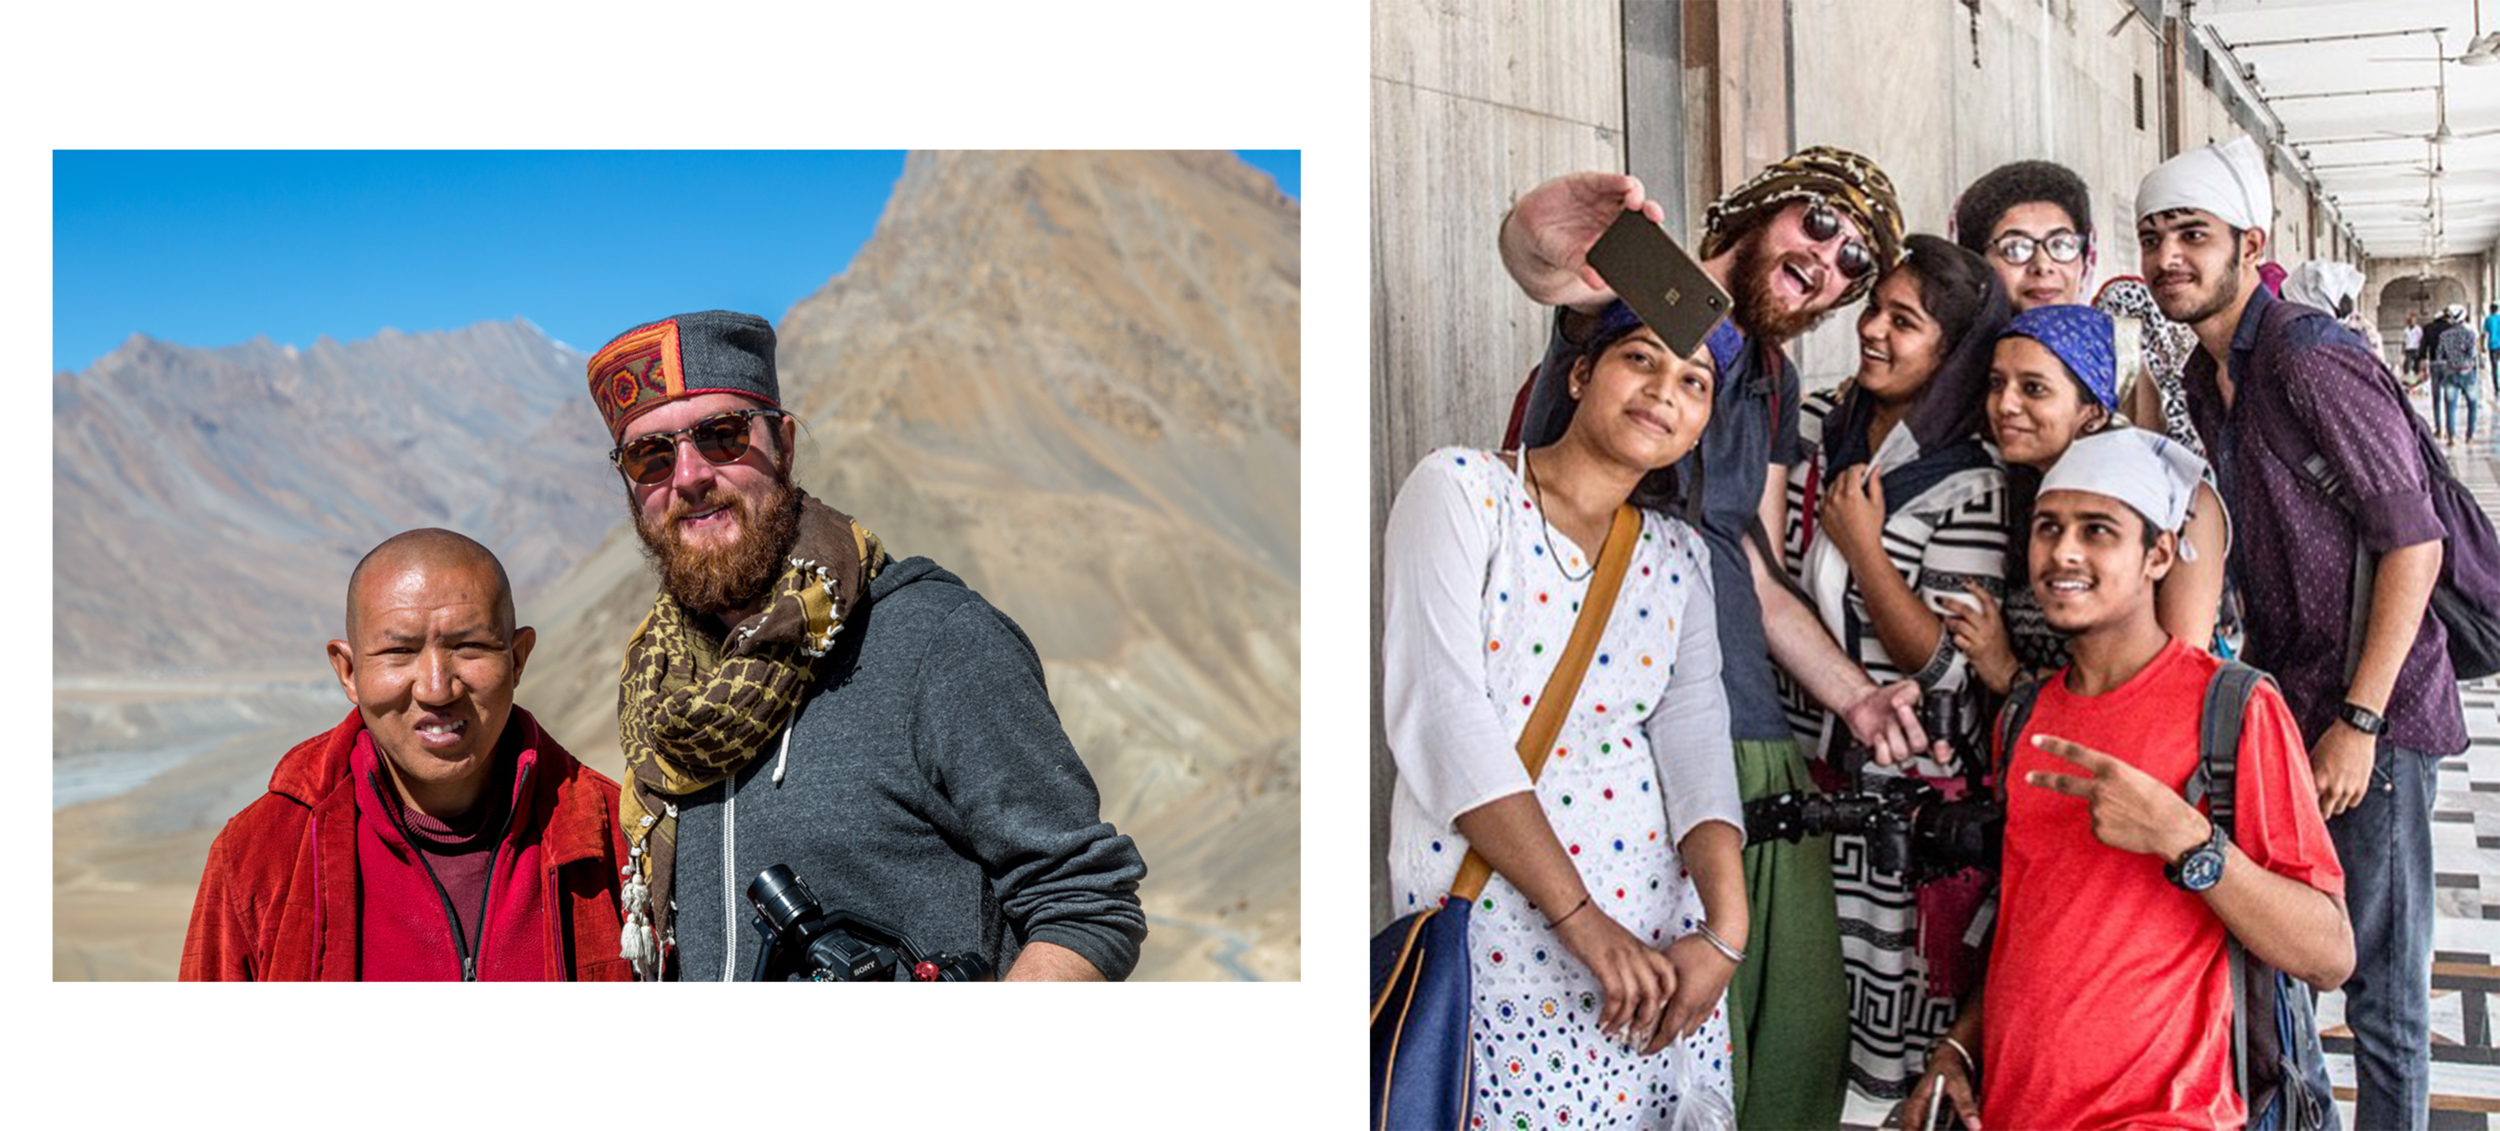 Making travel films brings you closer to the people and places you visit.